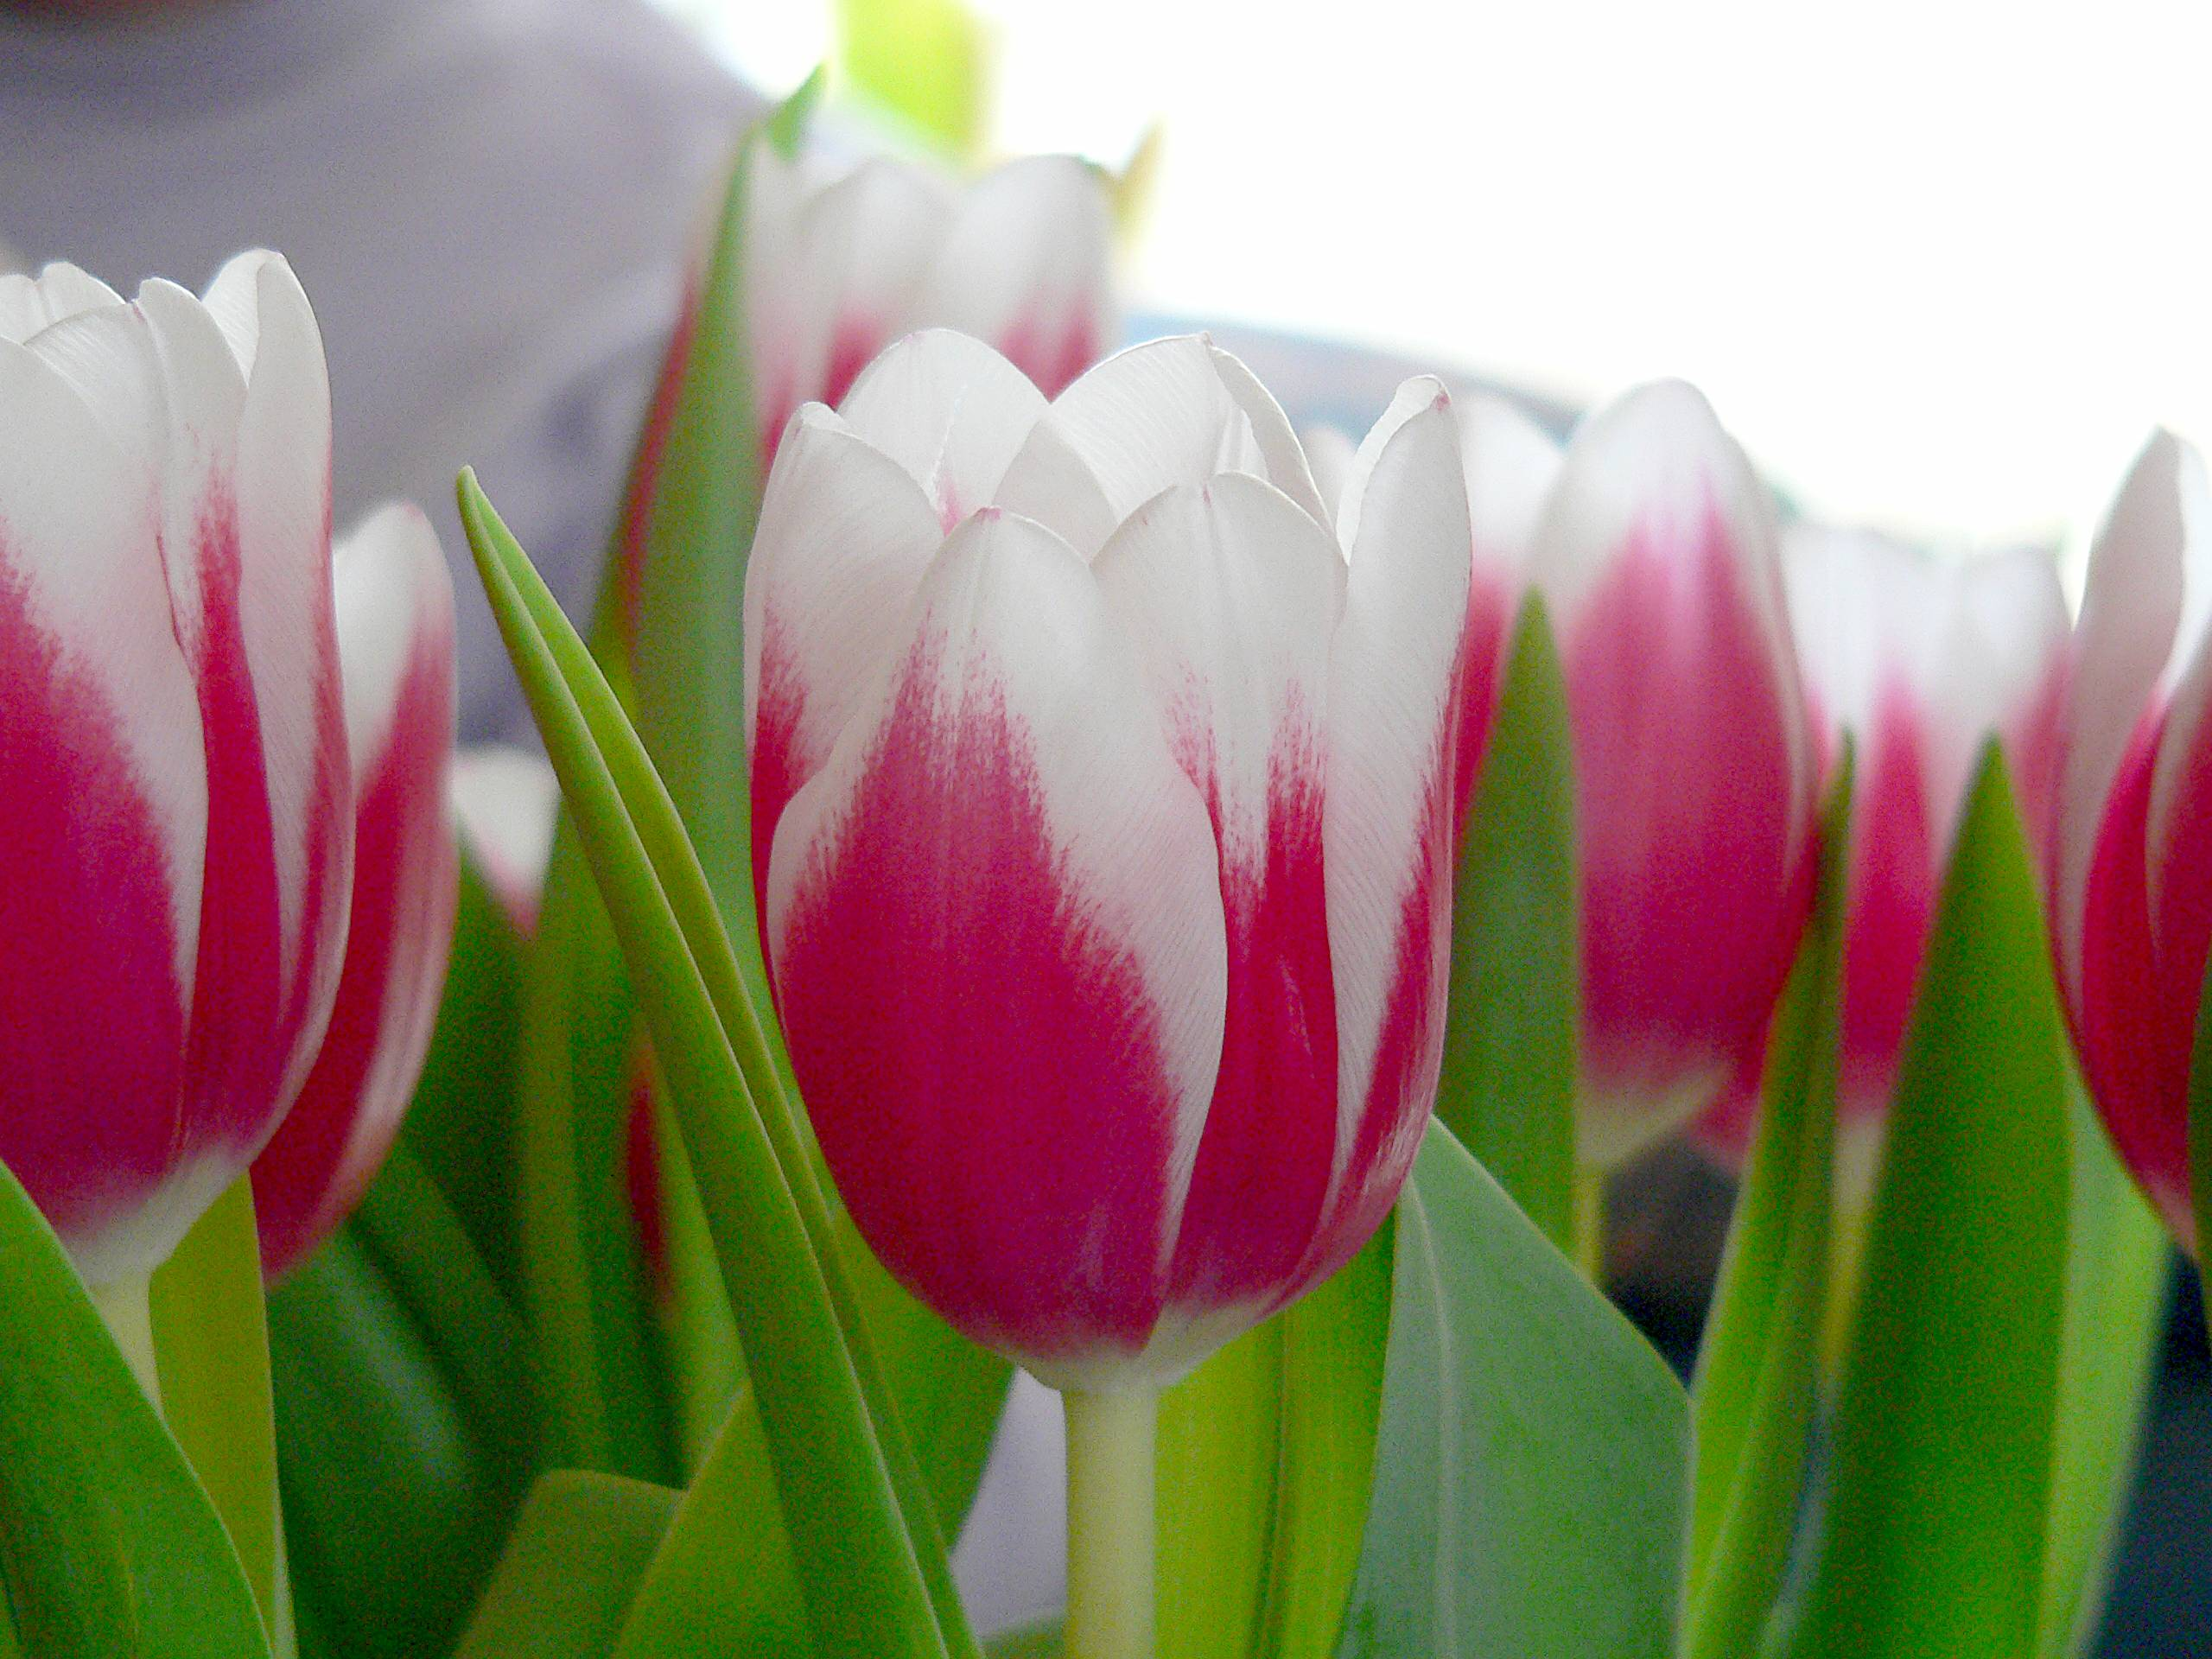 What makes tulips droop?